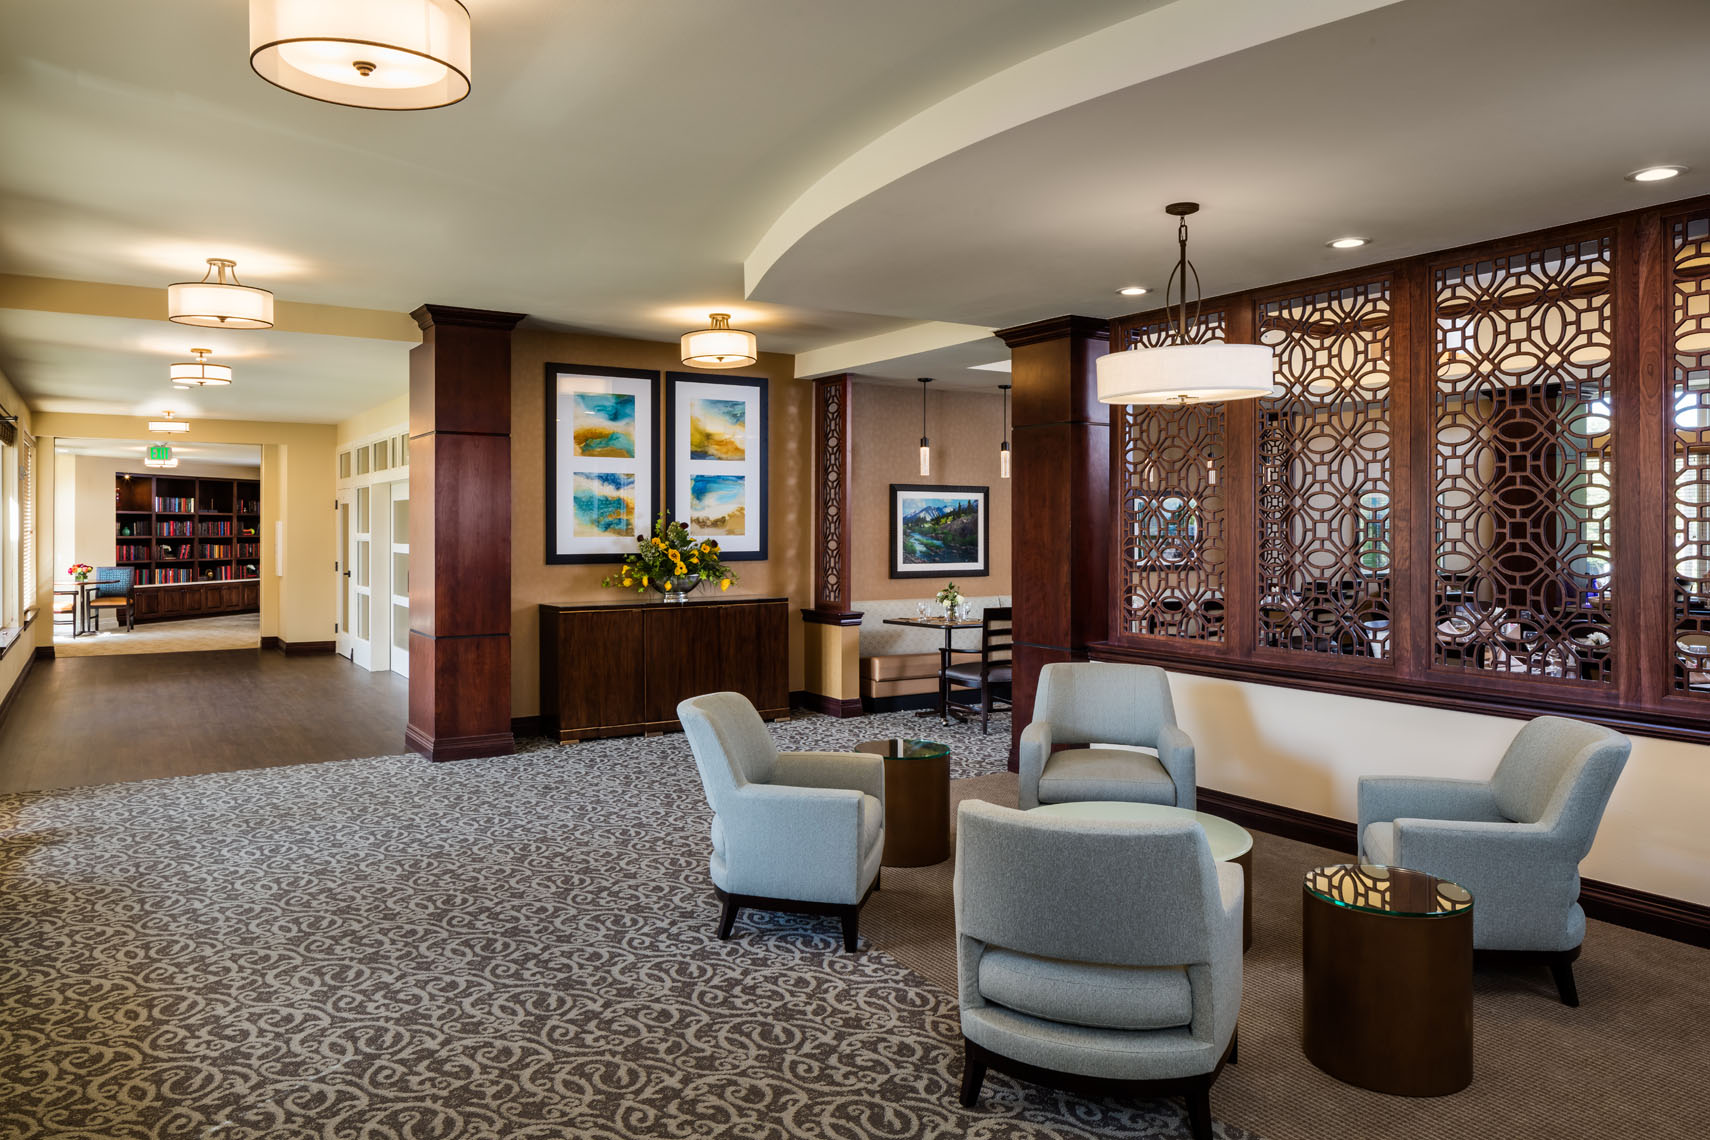 Senior living facility photographed for the architect and interior designer in denver colorado